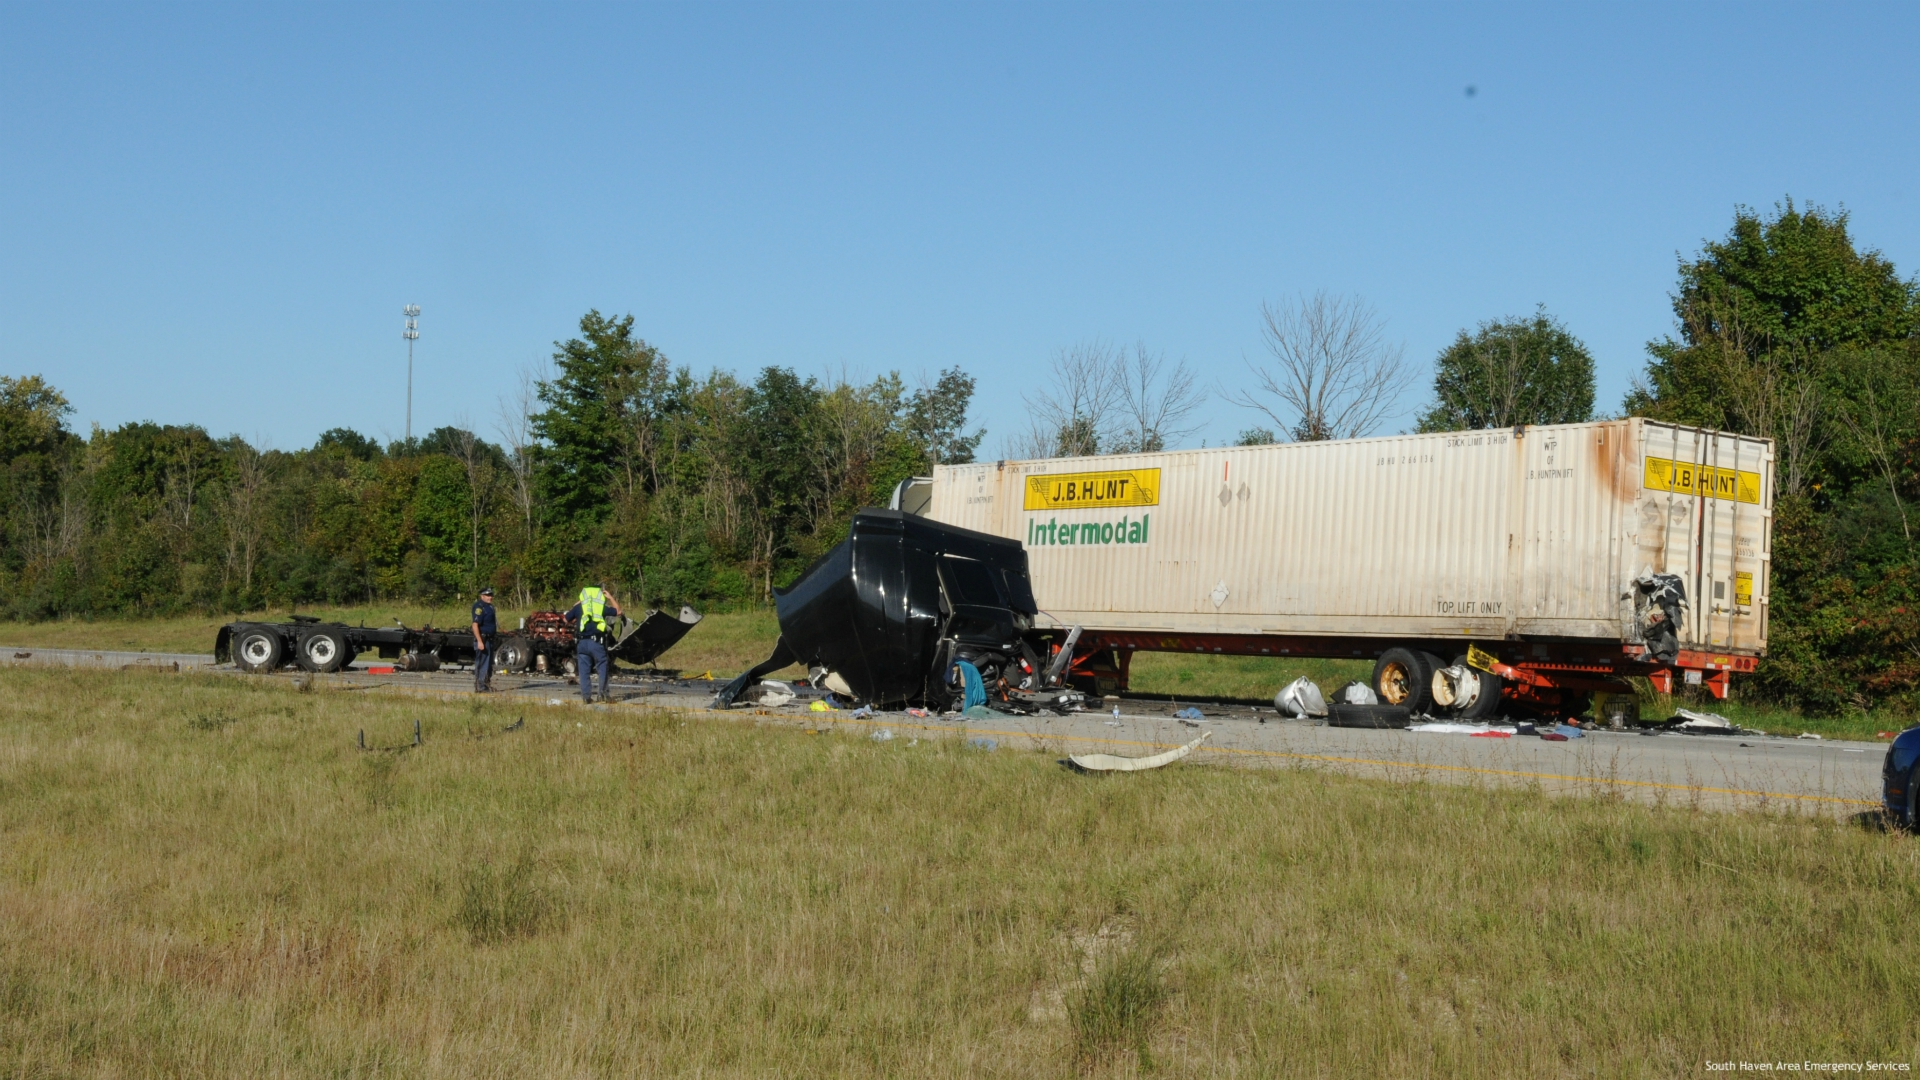 Authorities say two people are in the hospital after two semis crashed in Casco Township on Sept. 18, 2020. (Courtesy of the South Haven Area Emergency Services)